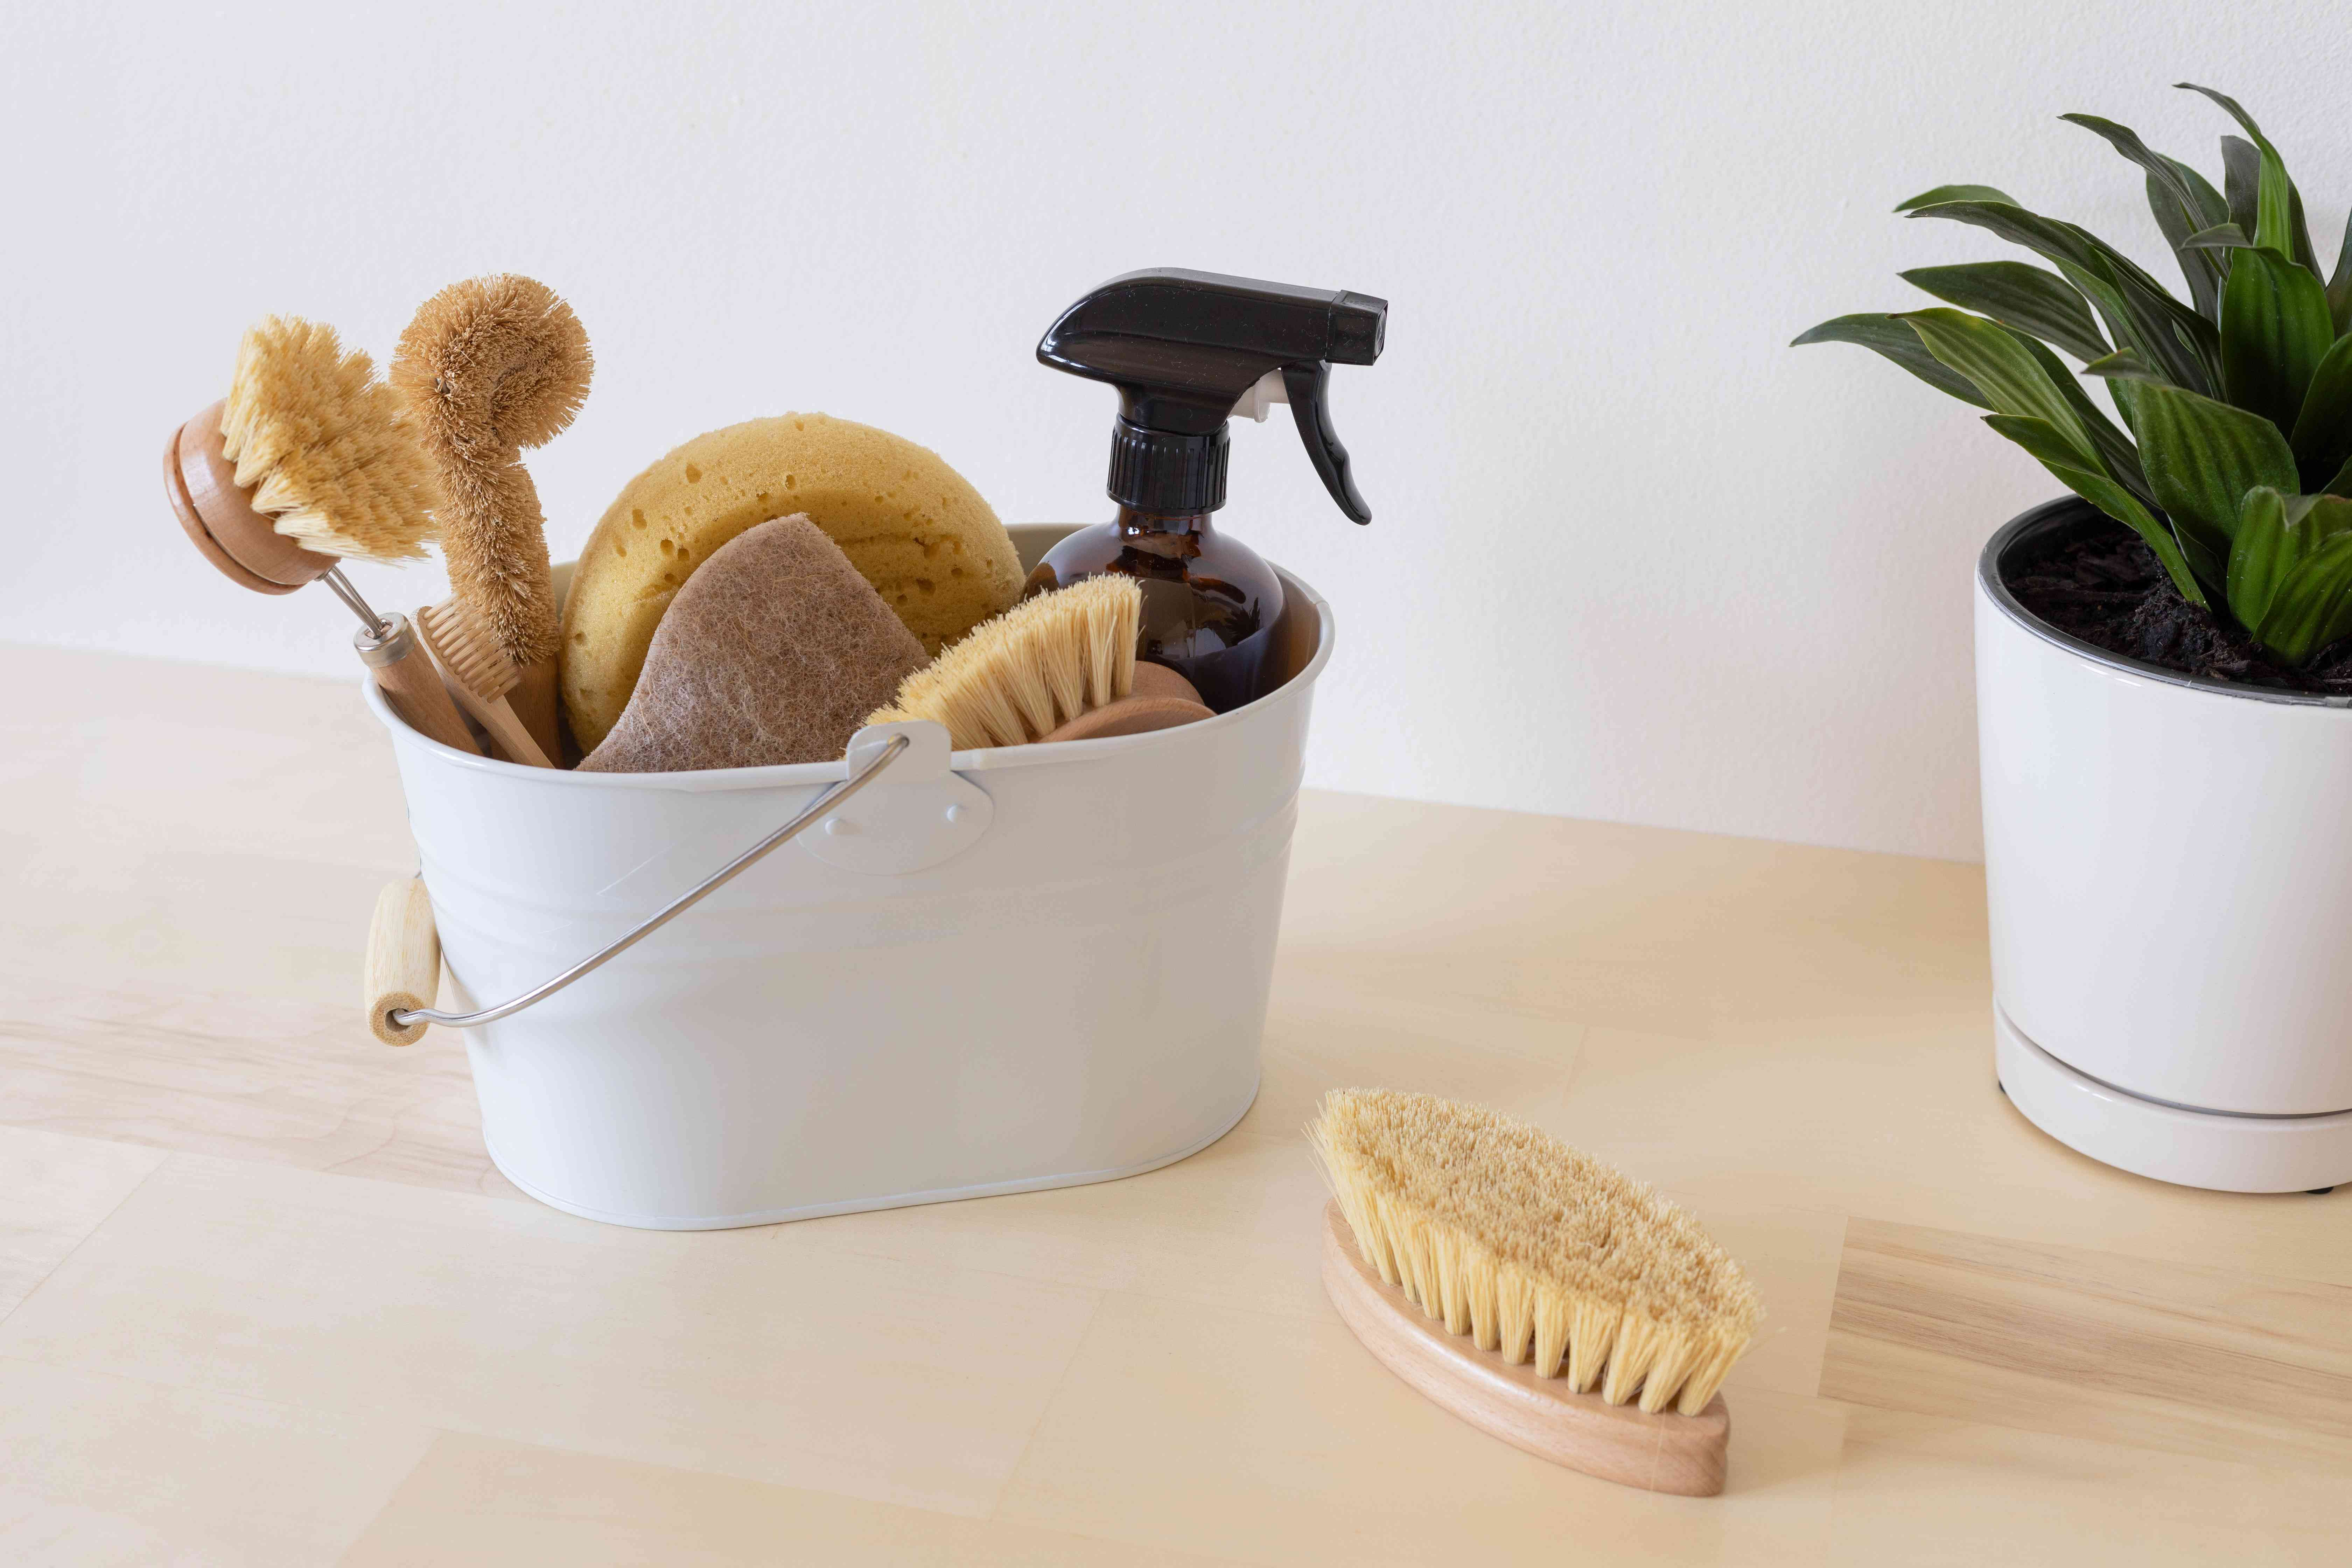 White metal caddy holding sponges and brushes next to houseplant